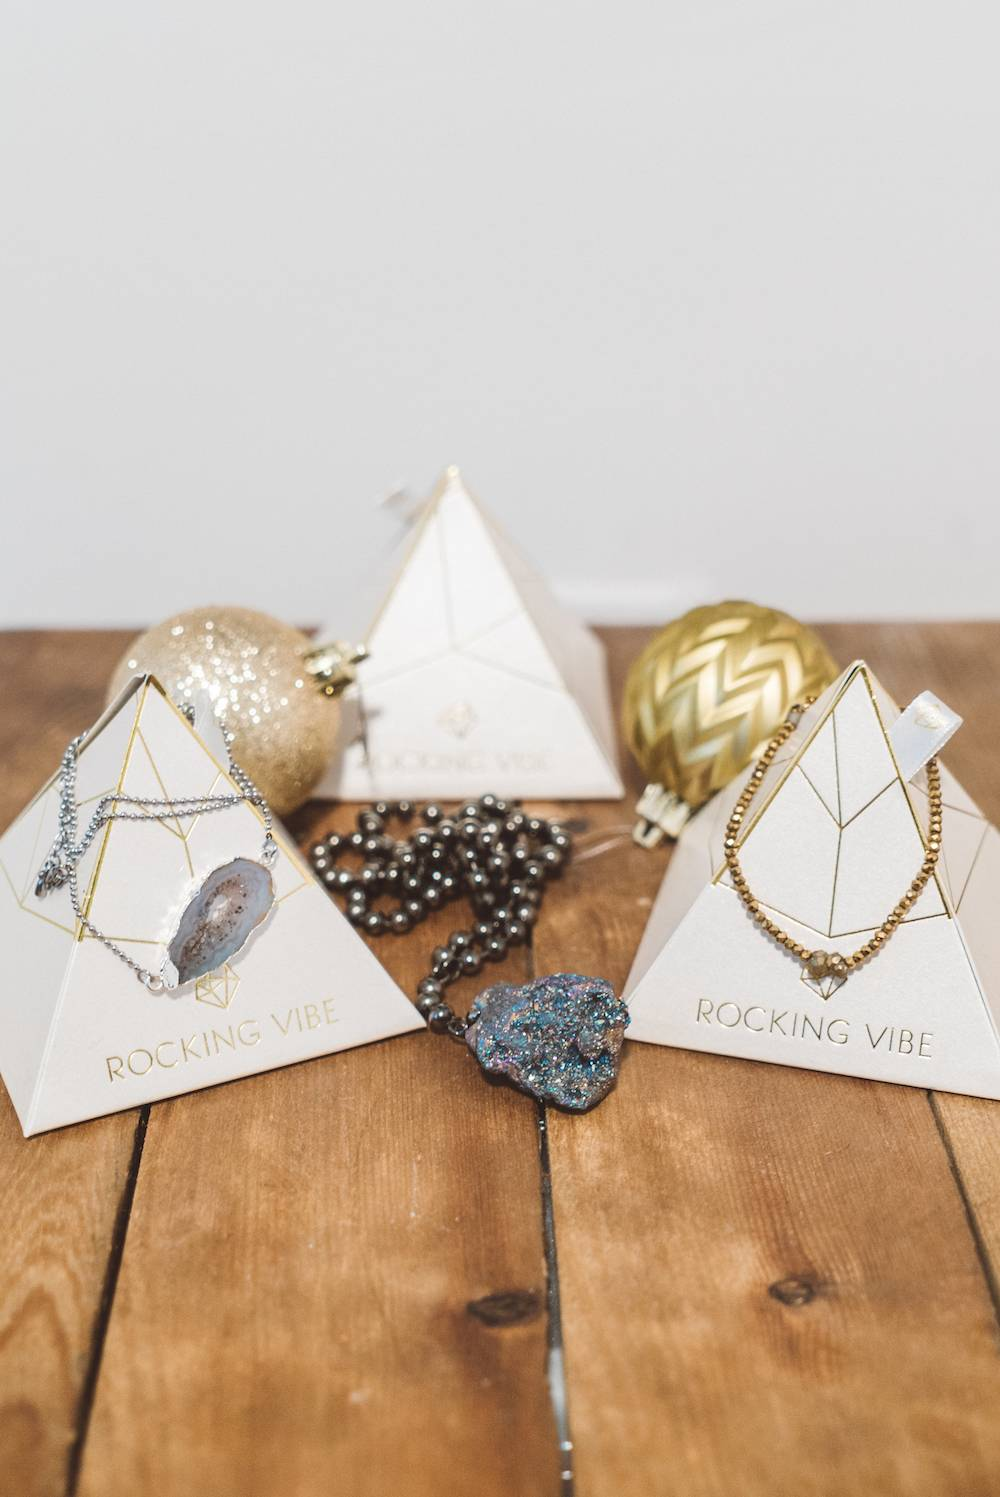 Rocking Vibe jewellery best holiday gift ideas for travel